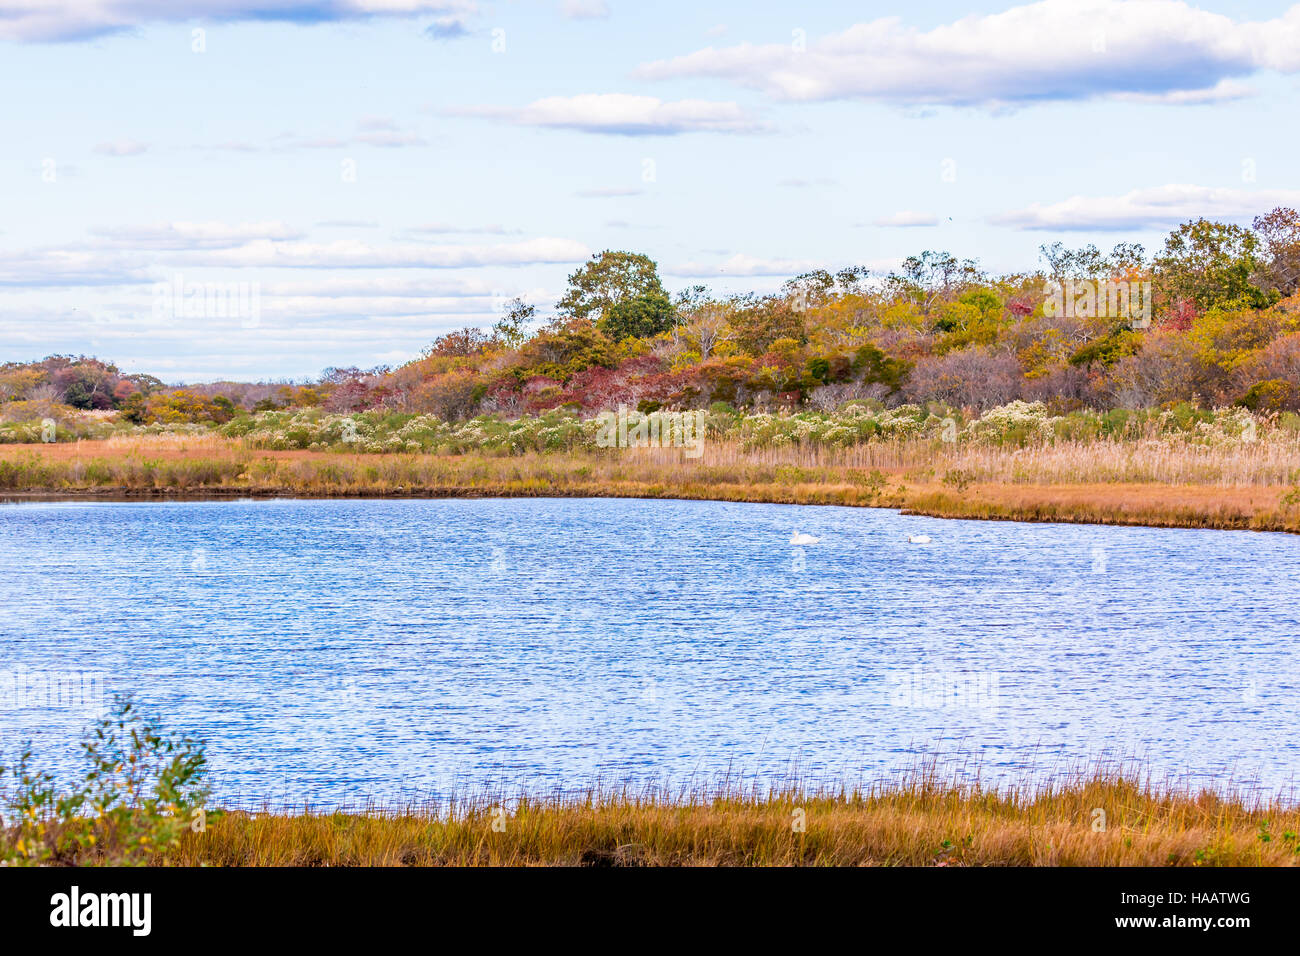 Body of water amongst natural undeveloped land - Stock Image